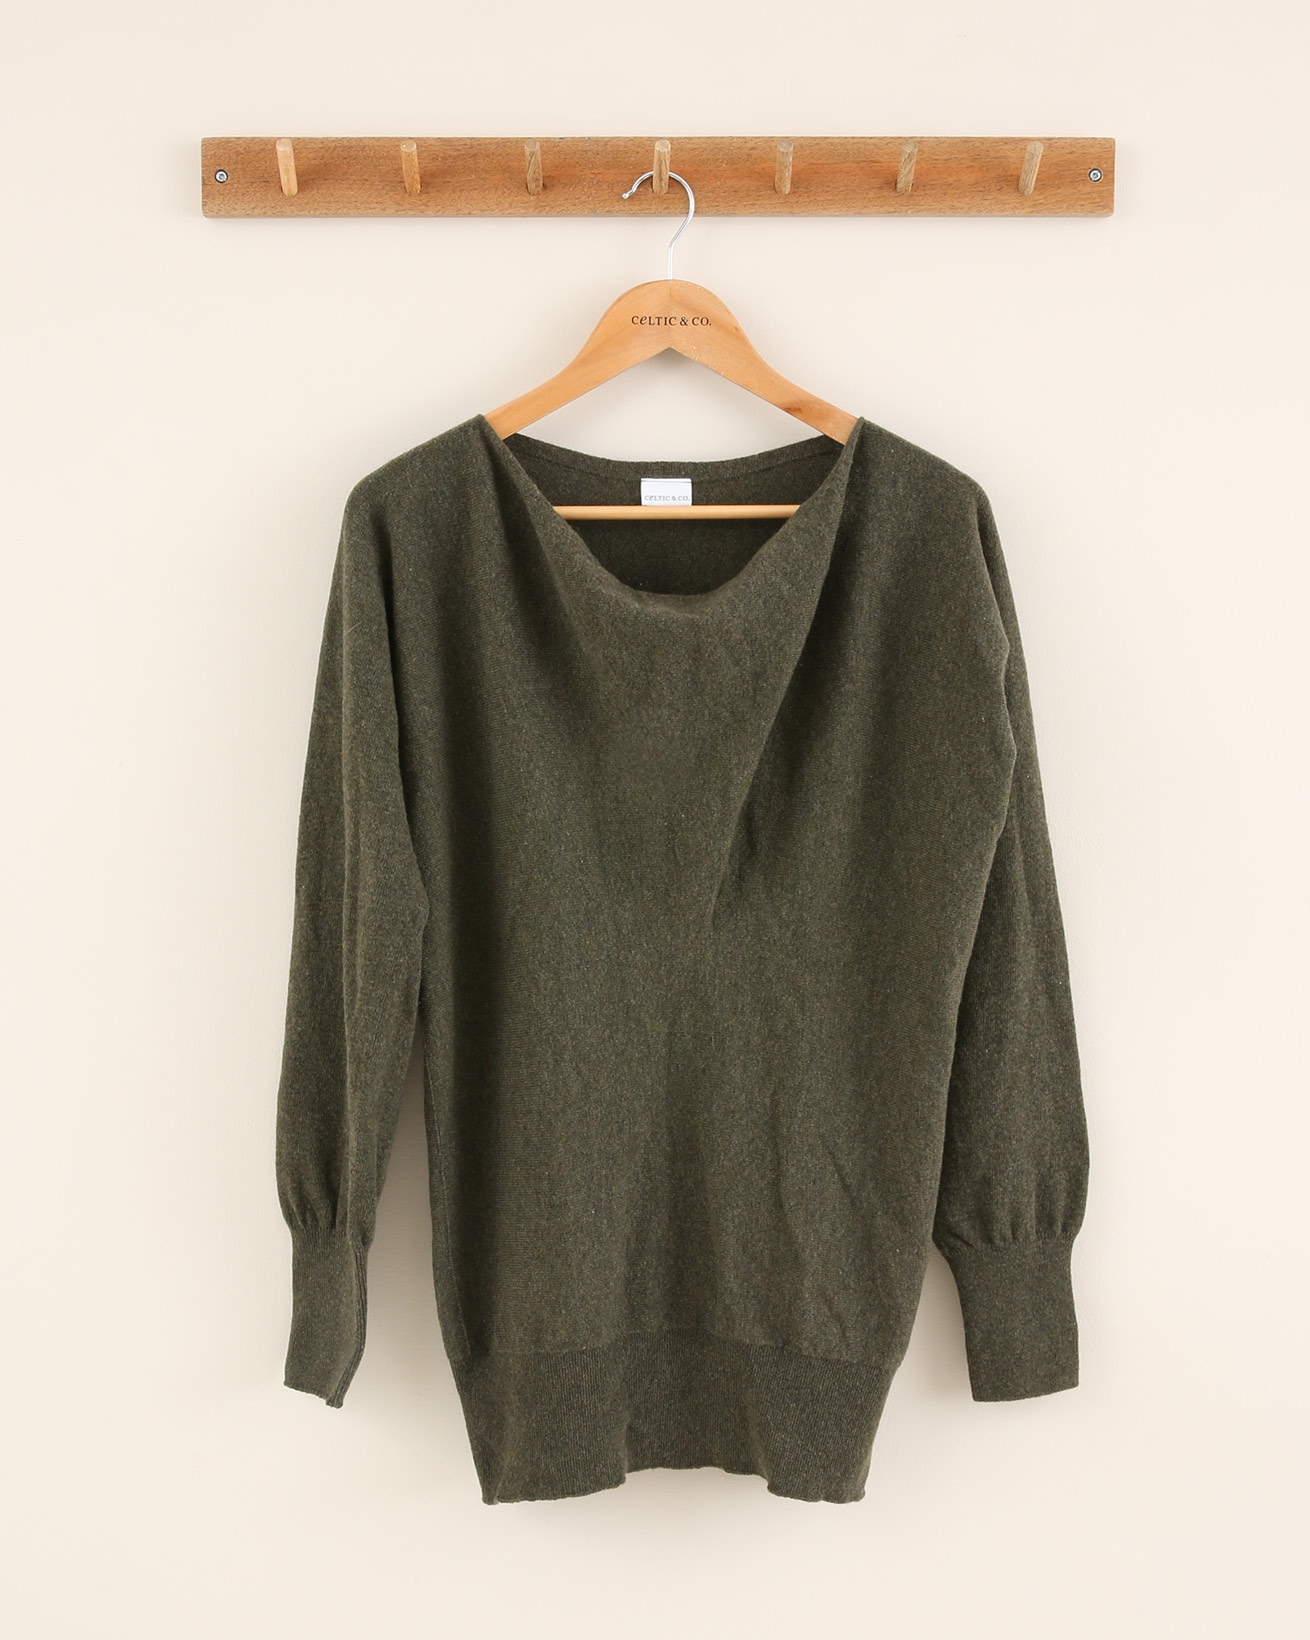 Soft Cowl Jumper - Small - Olive - 1829